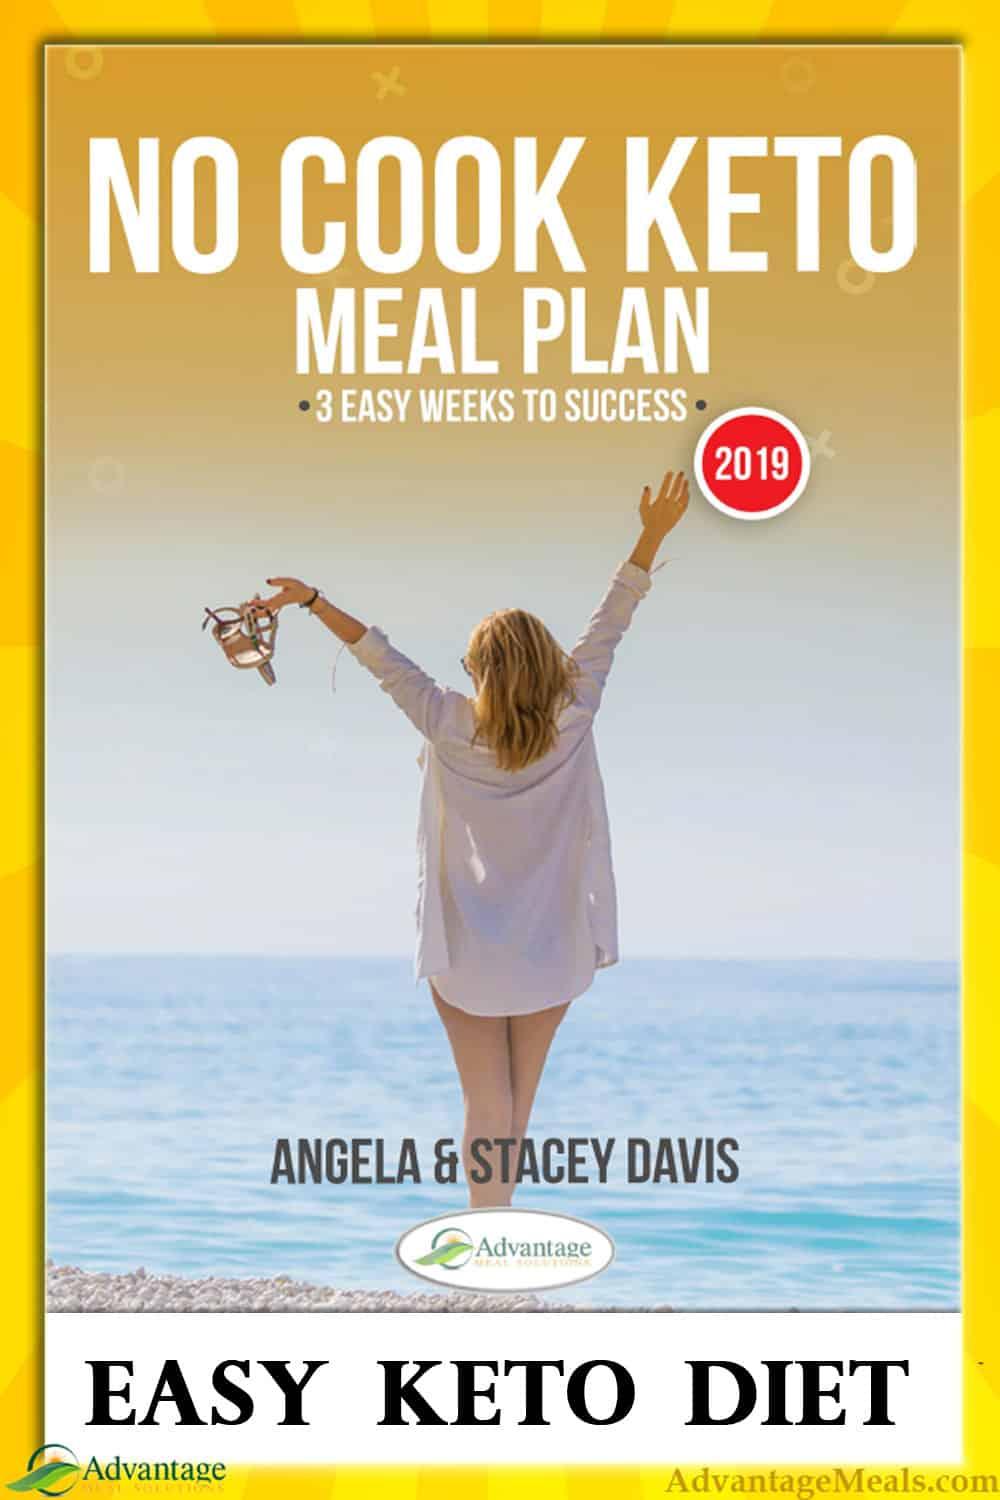 2019 Edition of the wildly popular No Cook Keto Meal Plan. Designed to take all the stress and confusion out of starting a Keto Diet. This is the easiest way for Keto Beginners to get into ketosis fast and set a solid foundation for the rest of your life. Author - Angela Davis of @AdvantageMeals #KetoDiet #KetoMealPlan